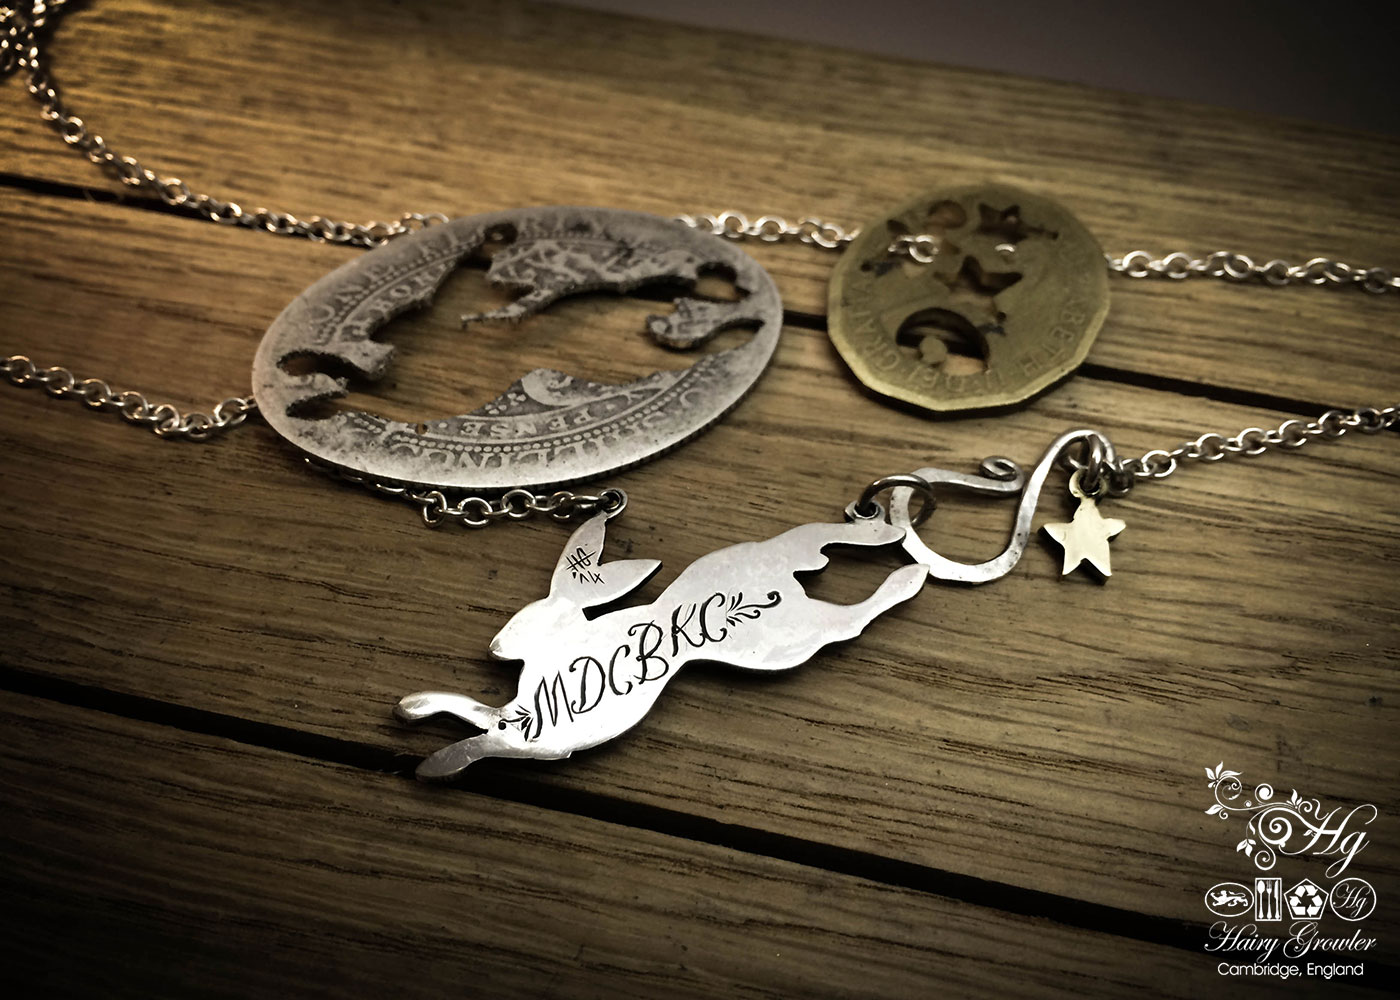 Handcrafted and recycled sterling silver magical leaping hare necklace